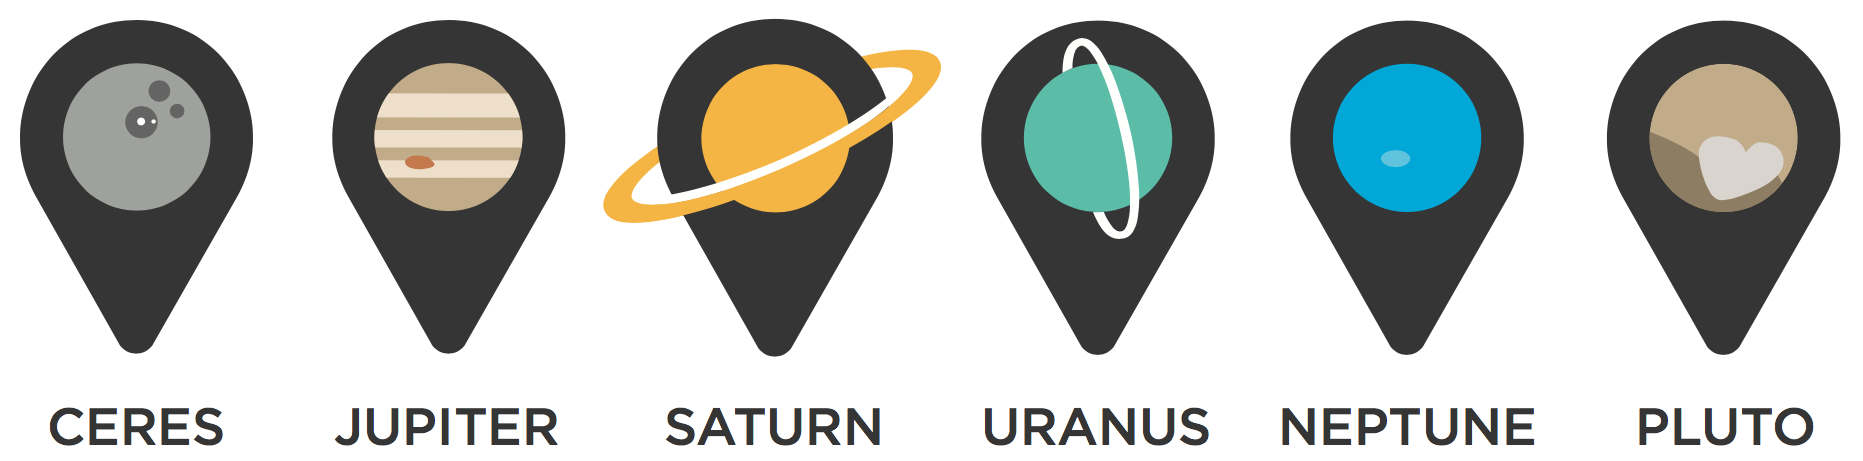 Outer planet icons.png